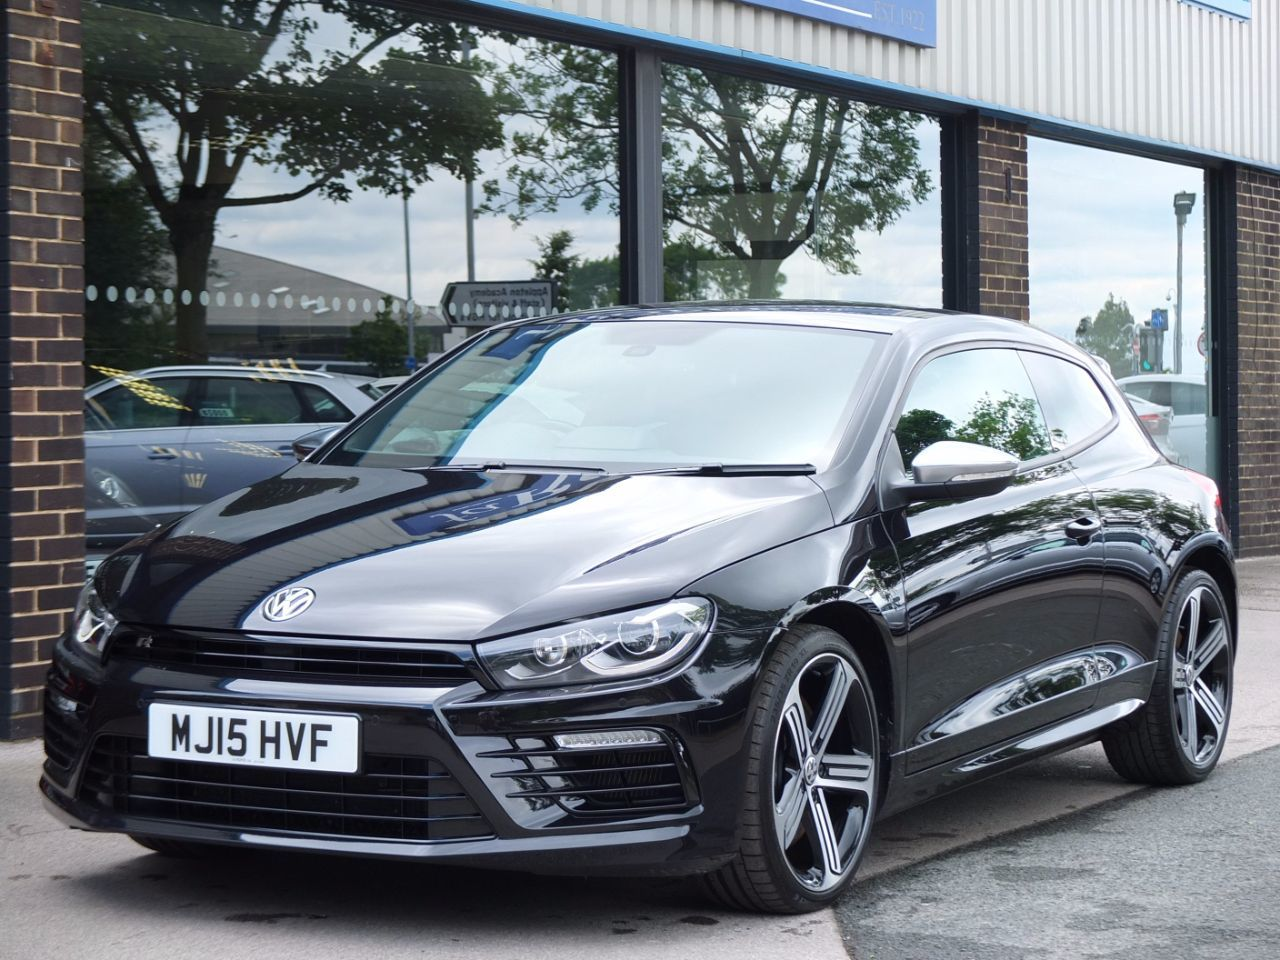 Volkswagen Scirocco 2.0 TSI 280ps BlueMotion Tech R DSG Coupe Petrol Deep Black MetallicVolkswagen Scirocco 2.0 TSI 280ps BlueMotion Tech R DSG Coupe Petrol Deep Black Metallic at fa Roper Ltd Bradford